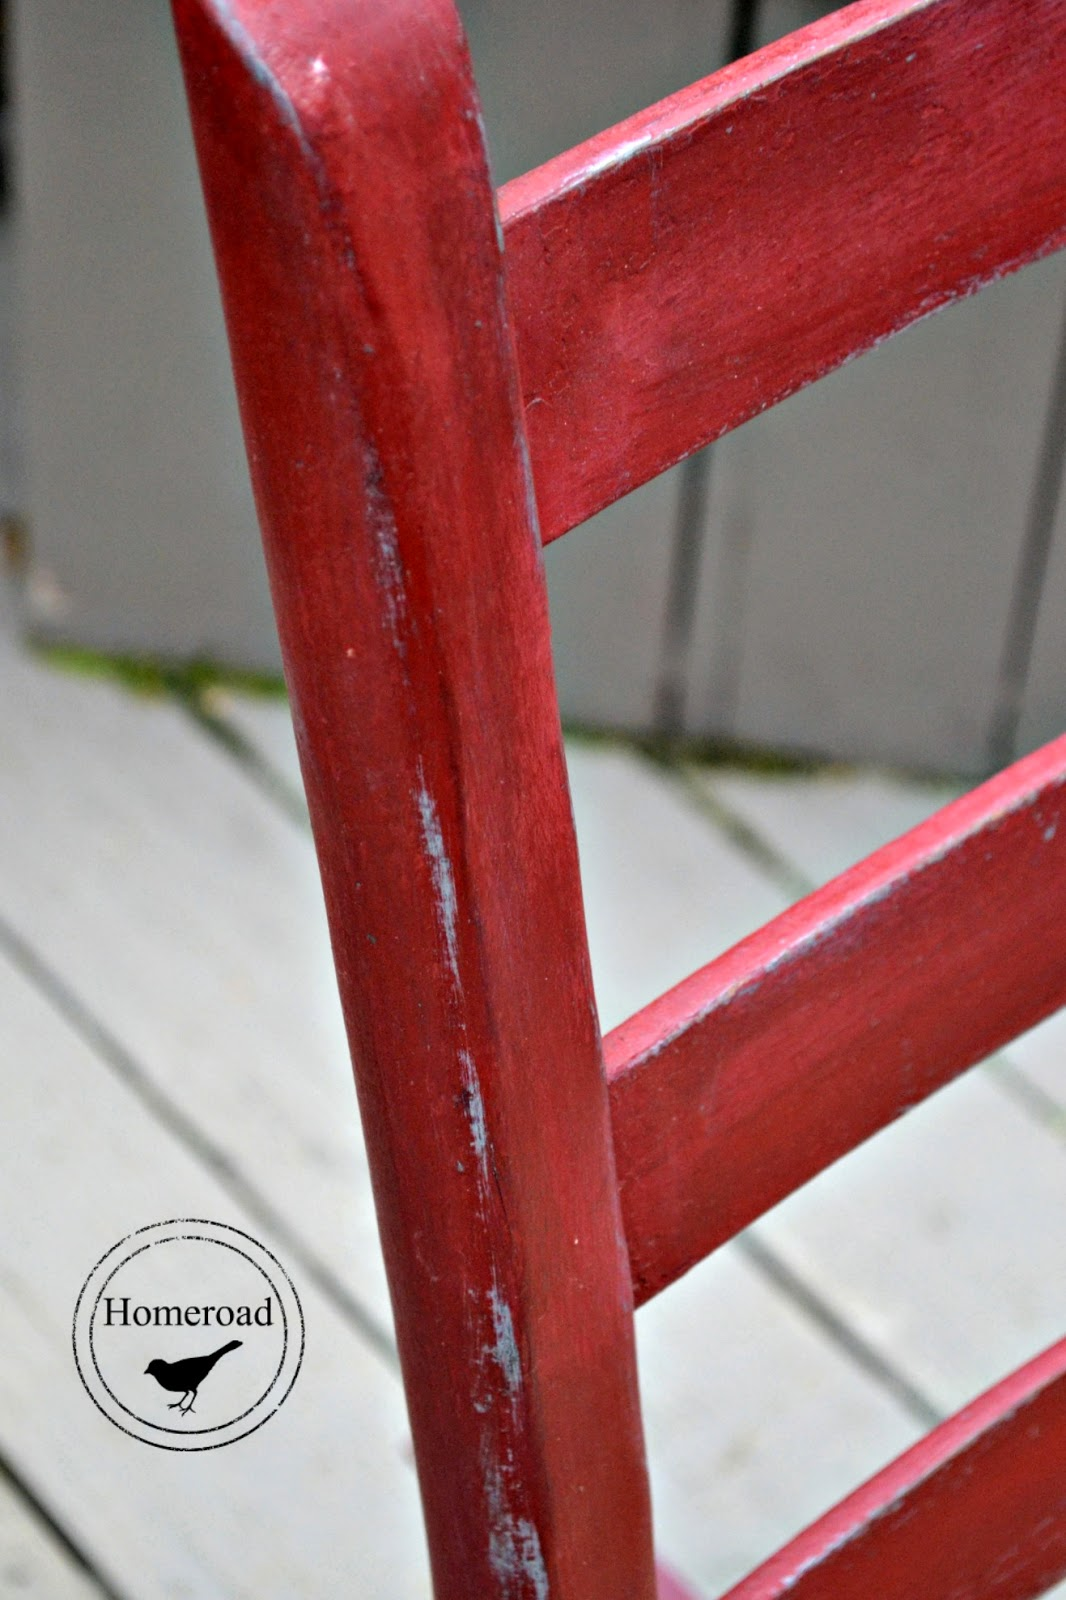 Antique Rocker with an Upholstery Webbing Seat